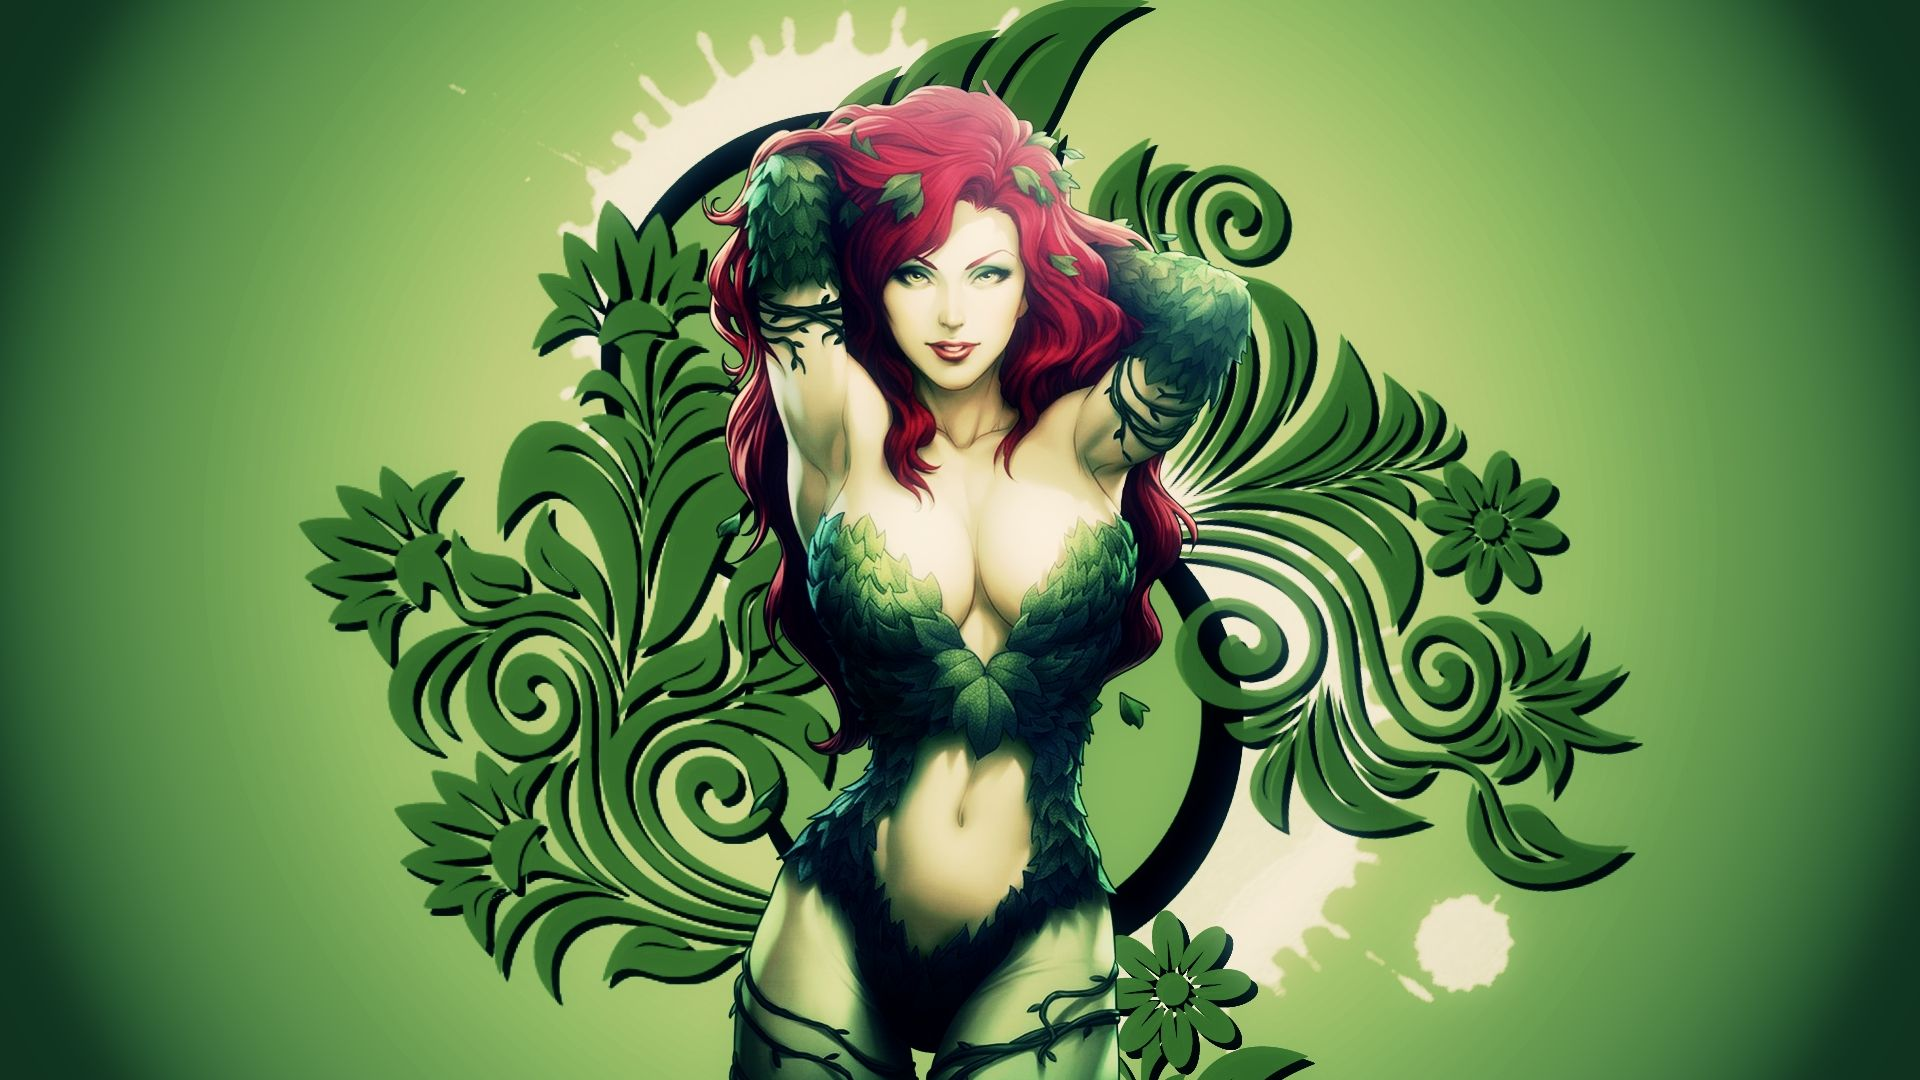 Poison Ivy Free Pictures On Greepx